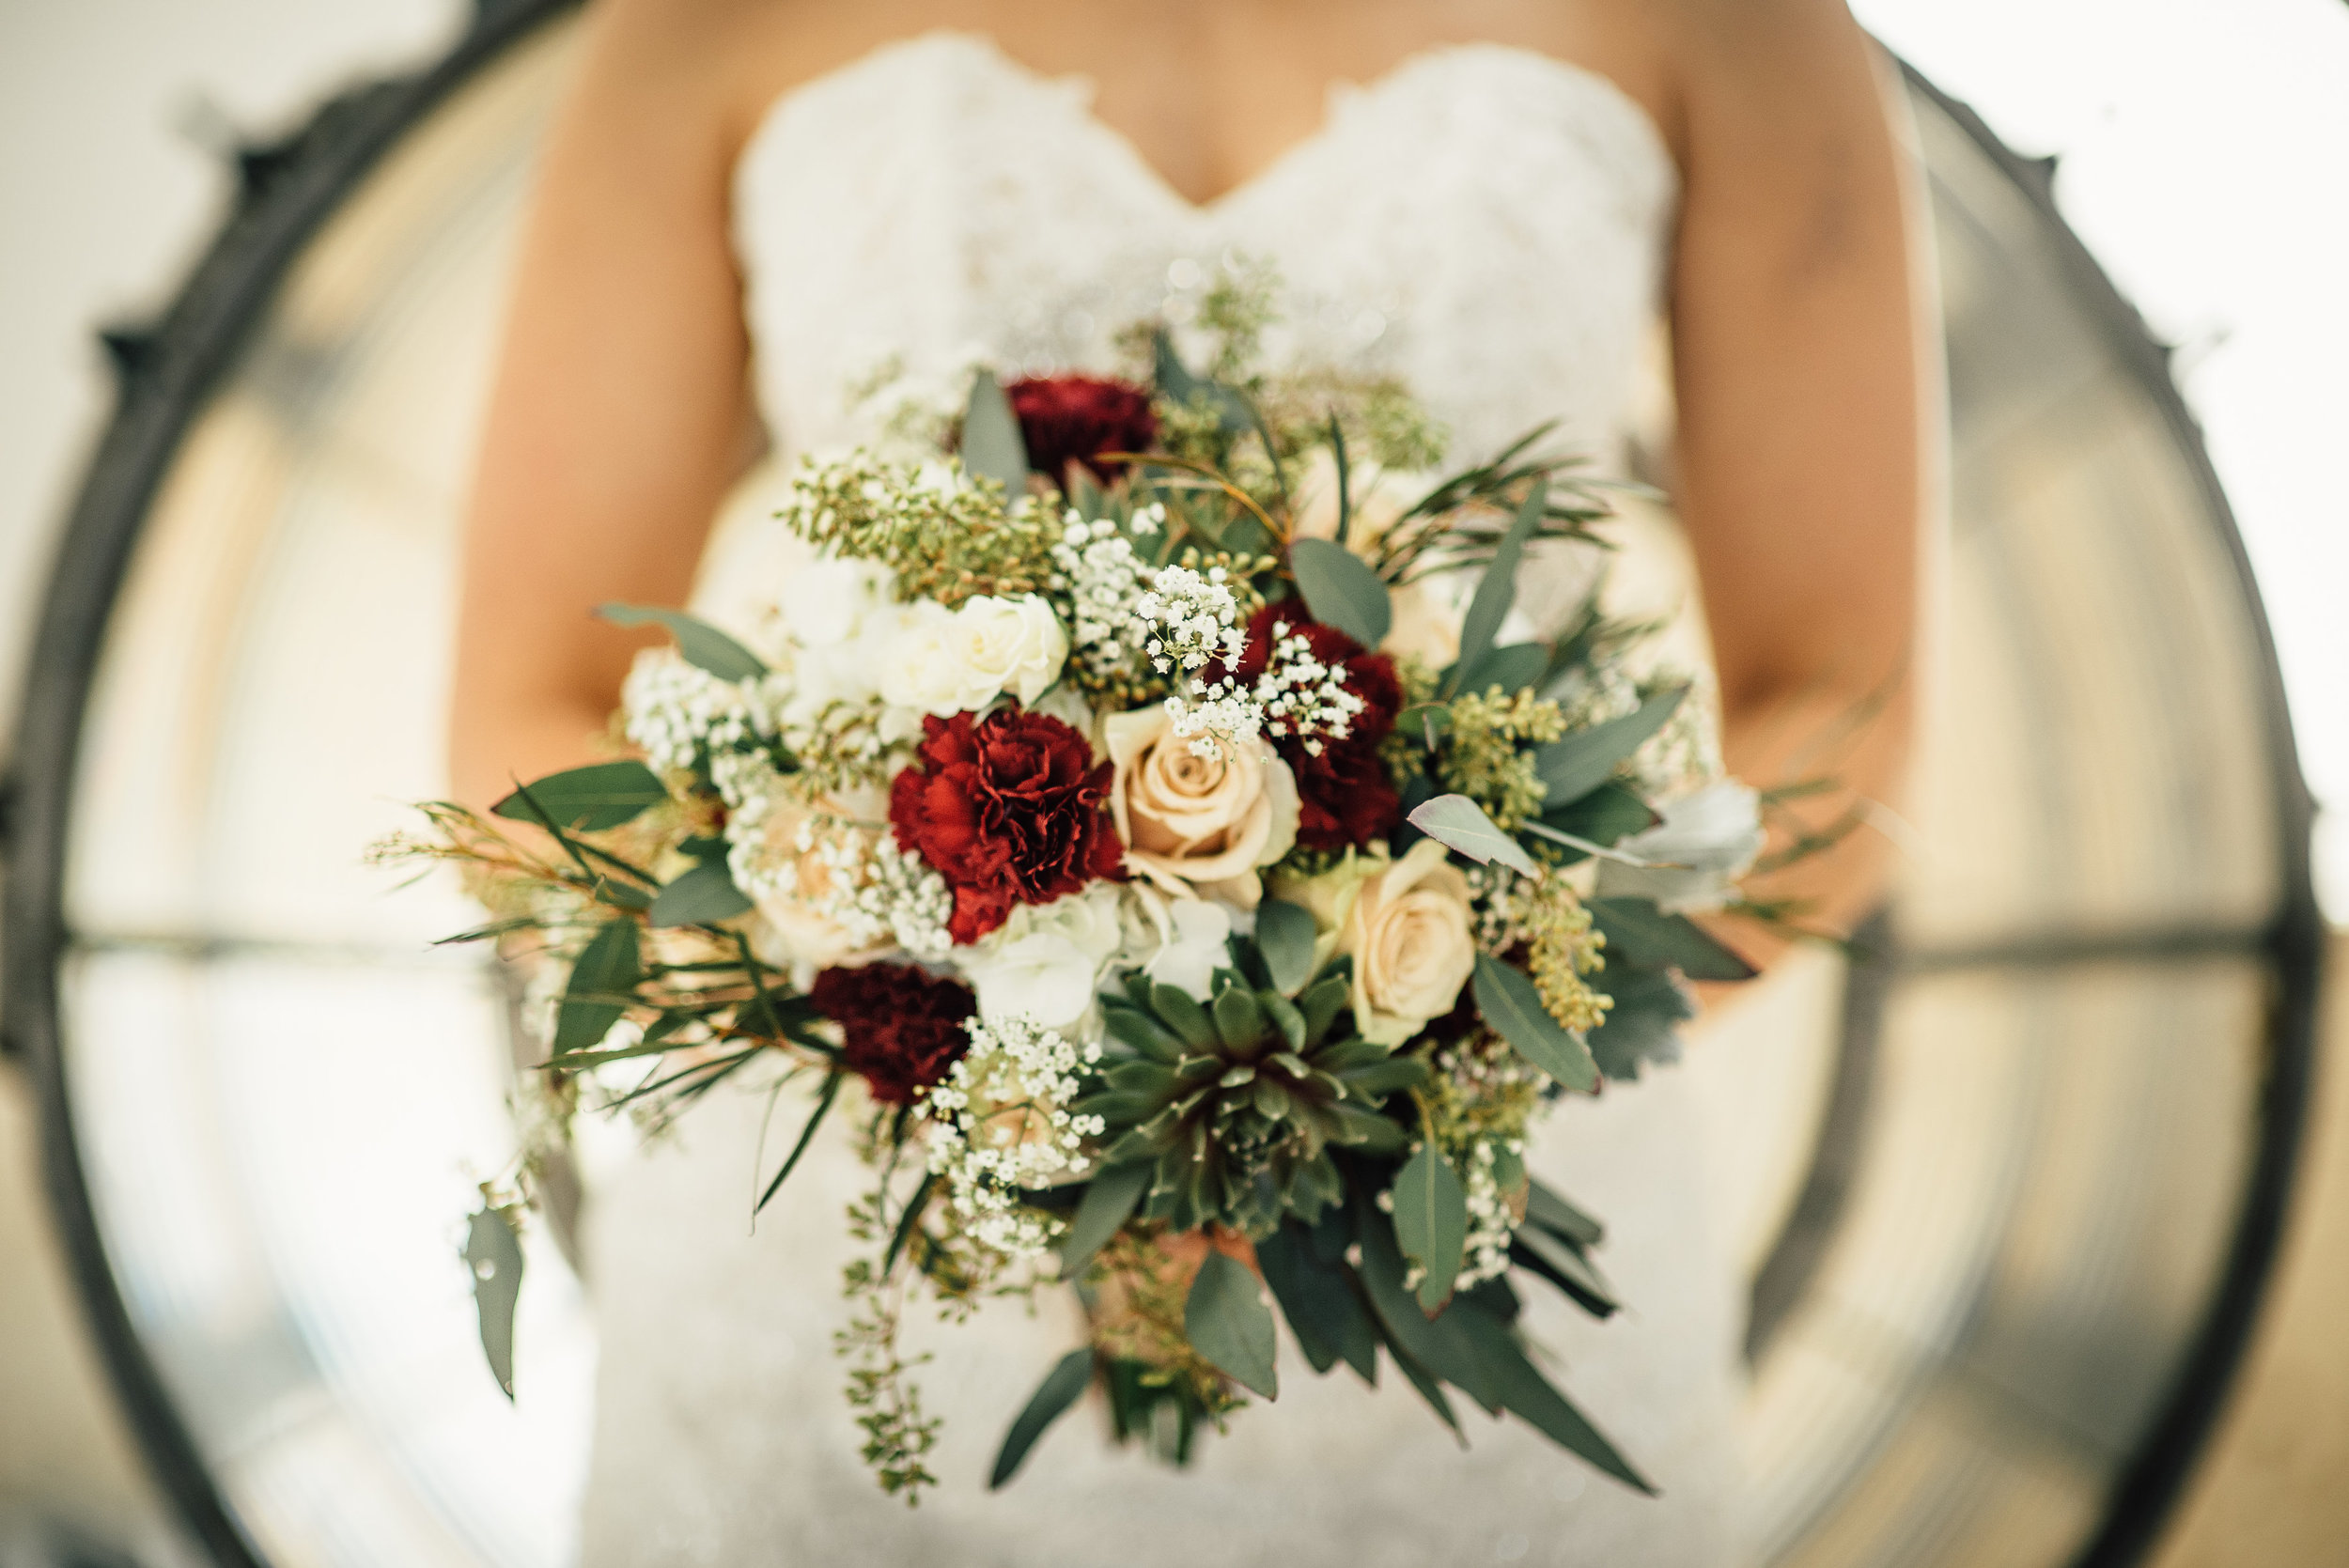 WB - Bouquet3.jpg